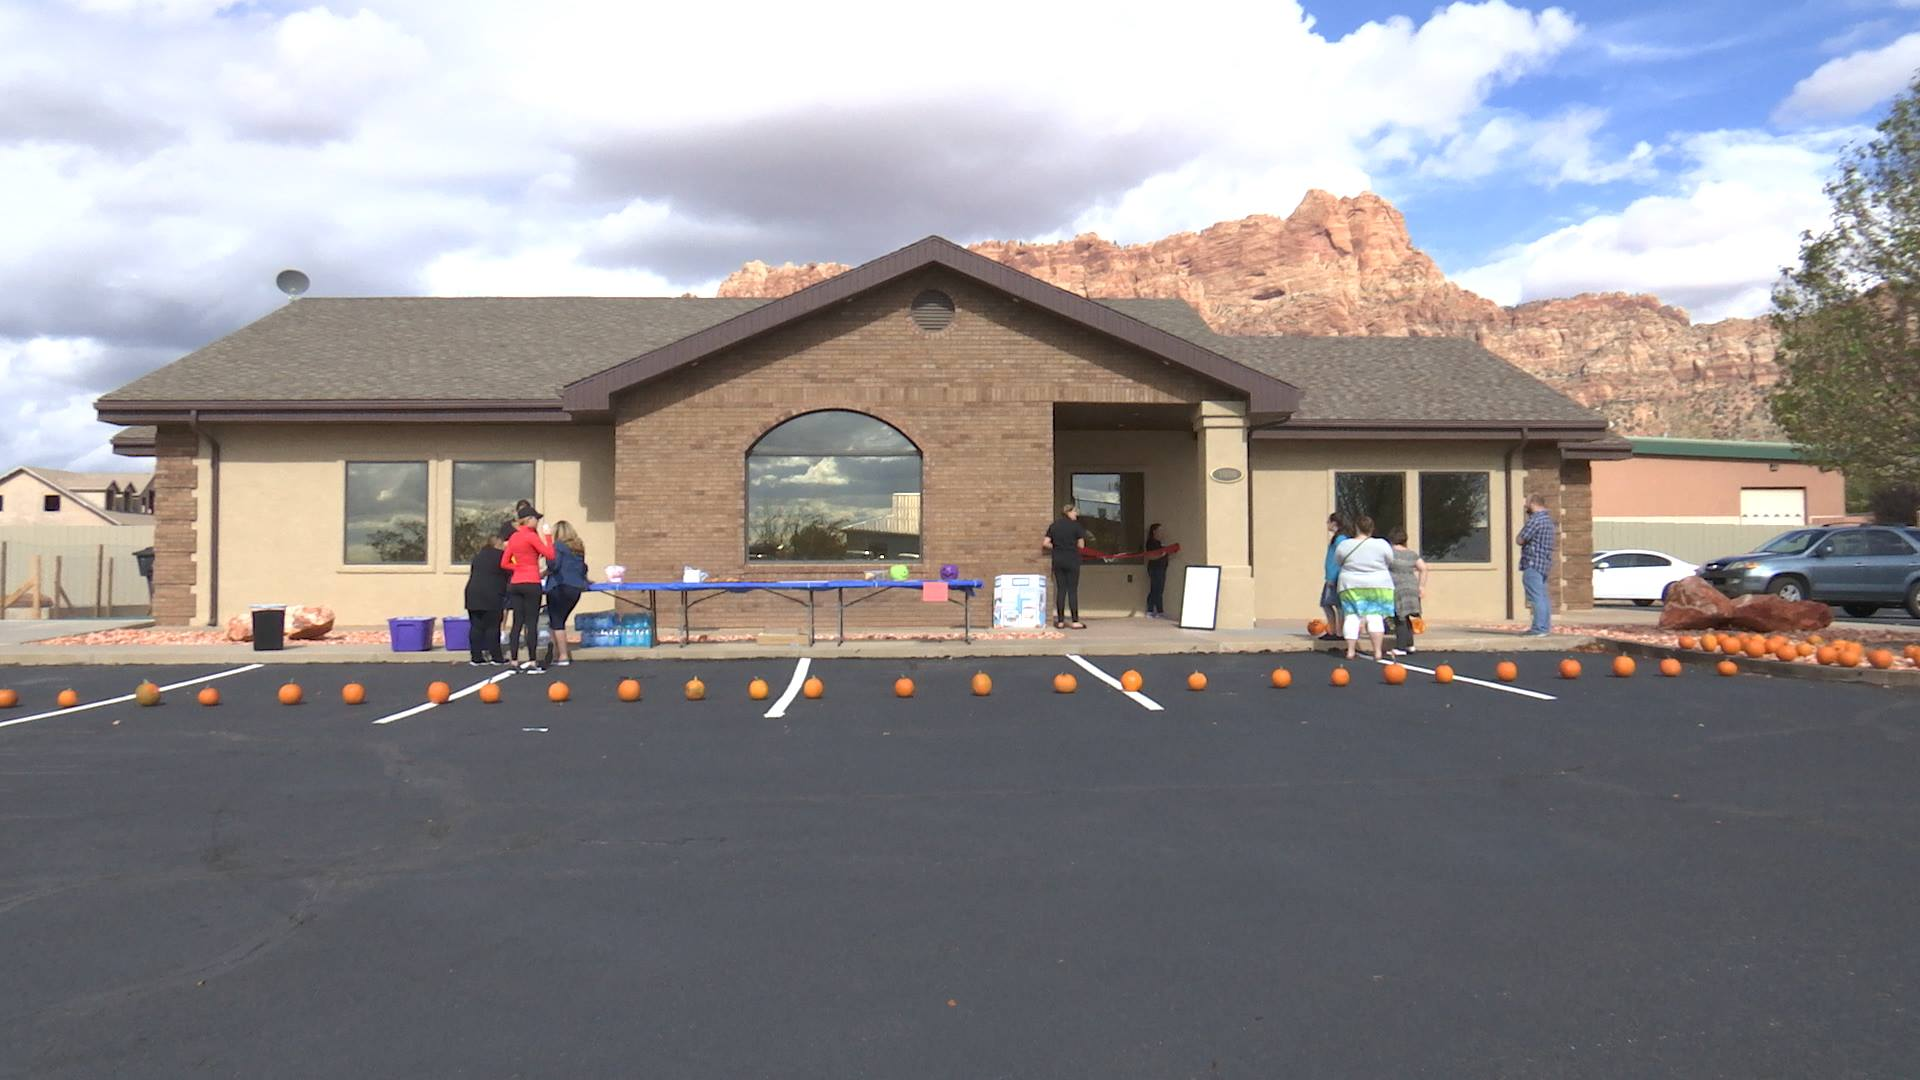 People prepare for the open house at the newly opened Hildale Dental, Hildale, Utah, Oct. 29, 2016 | Photo by Sheldon Demke, St. George News